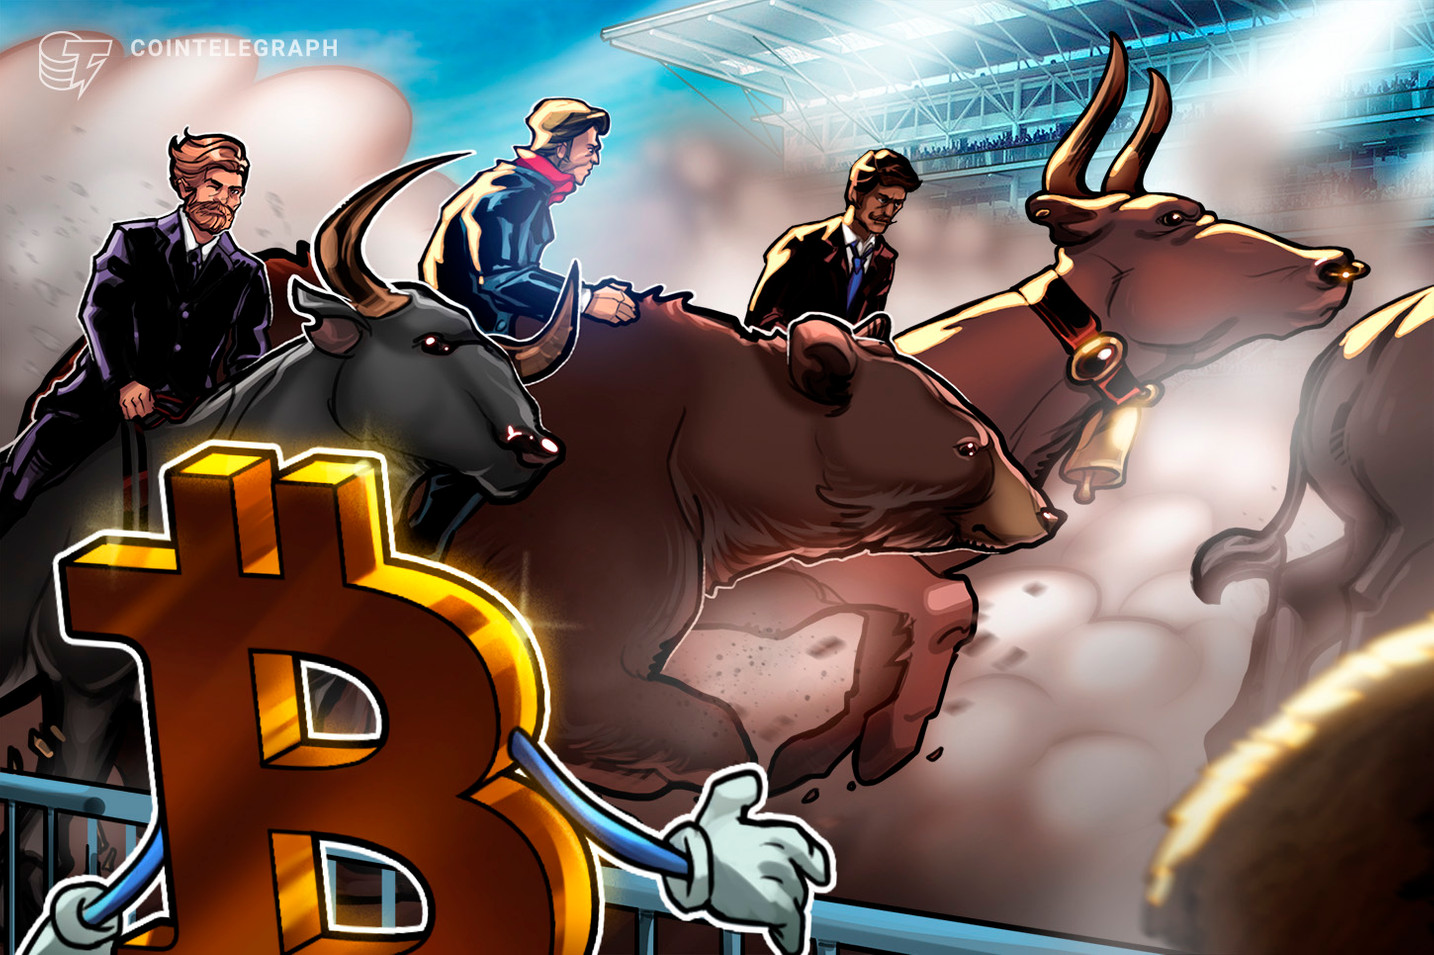 The institutional herd is here: Bitcoin volume on CME, LMAX hits new records